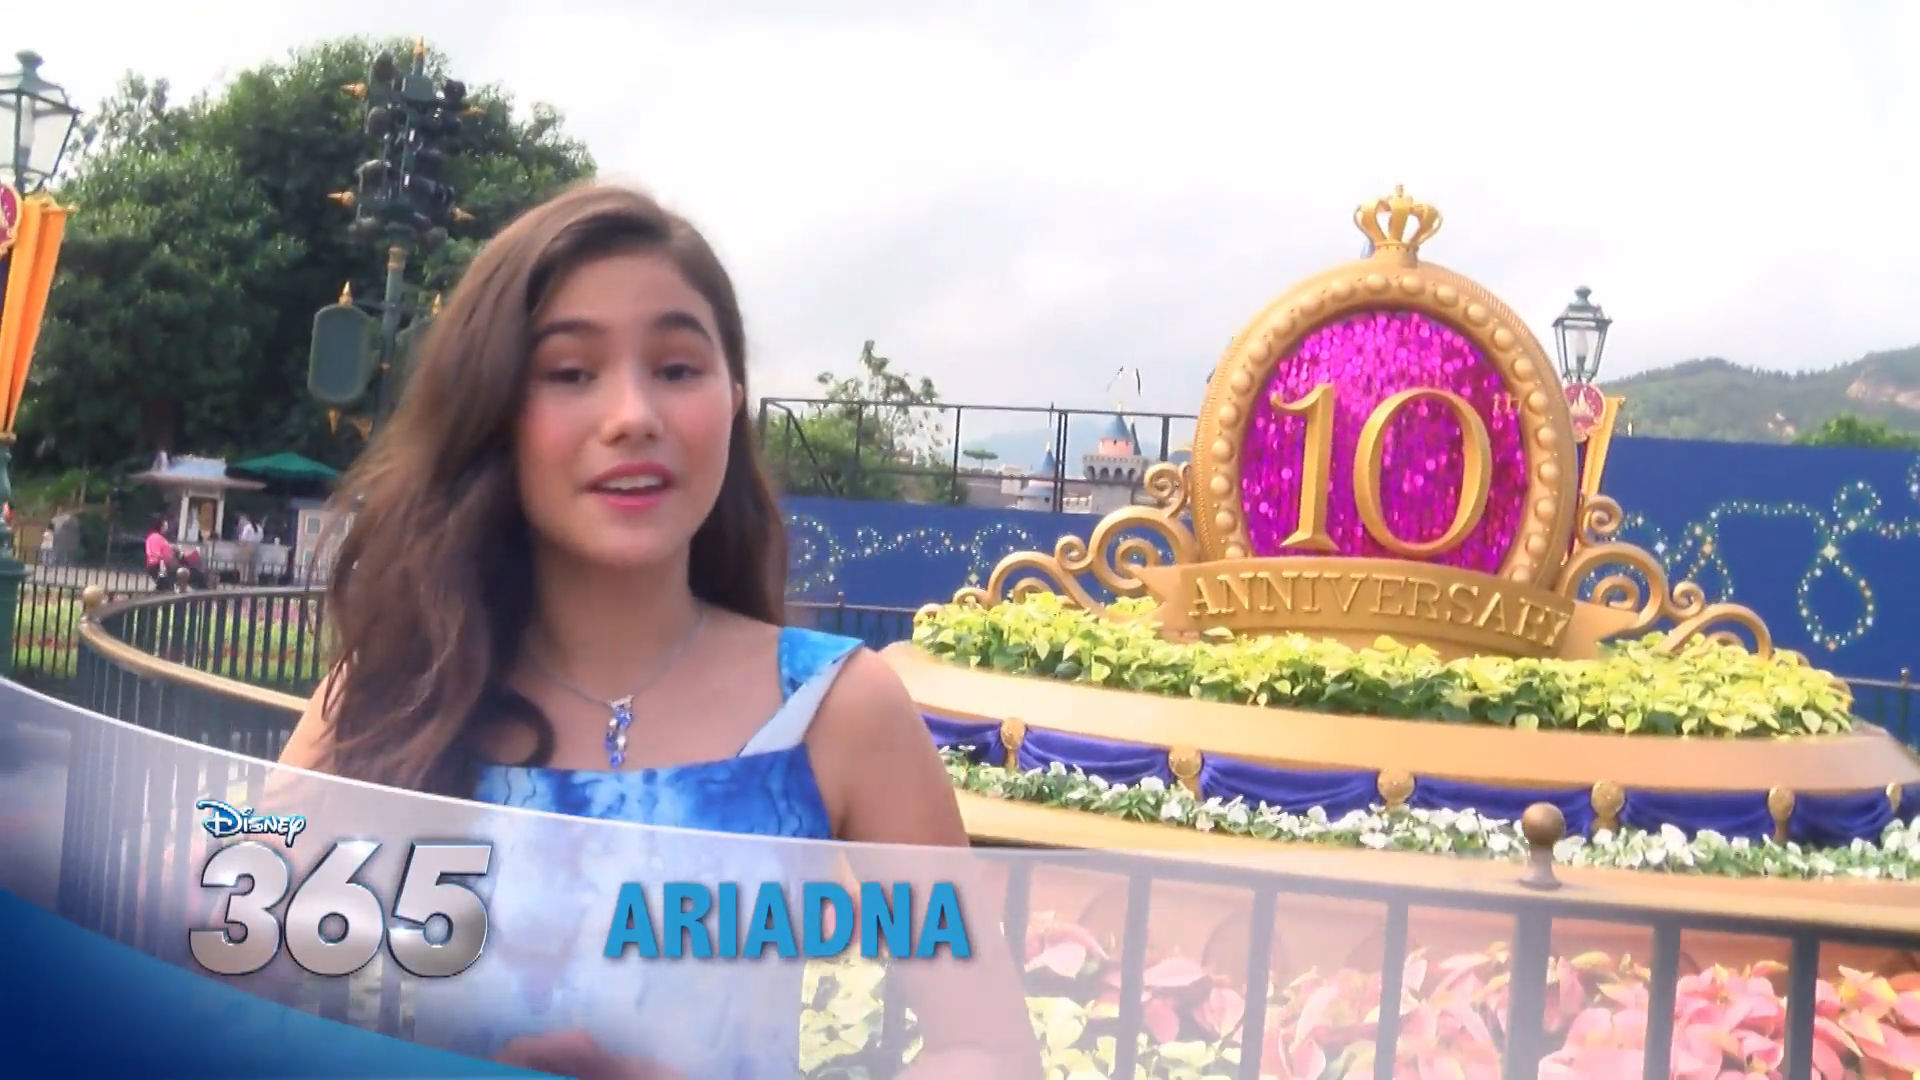 Disney 365 - Hong Kong Disneyland 10th Anniversary Celebration with Ariadna